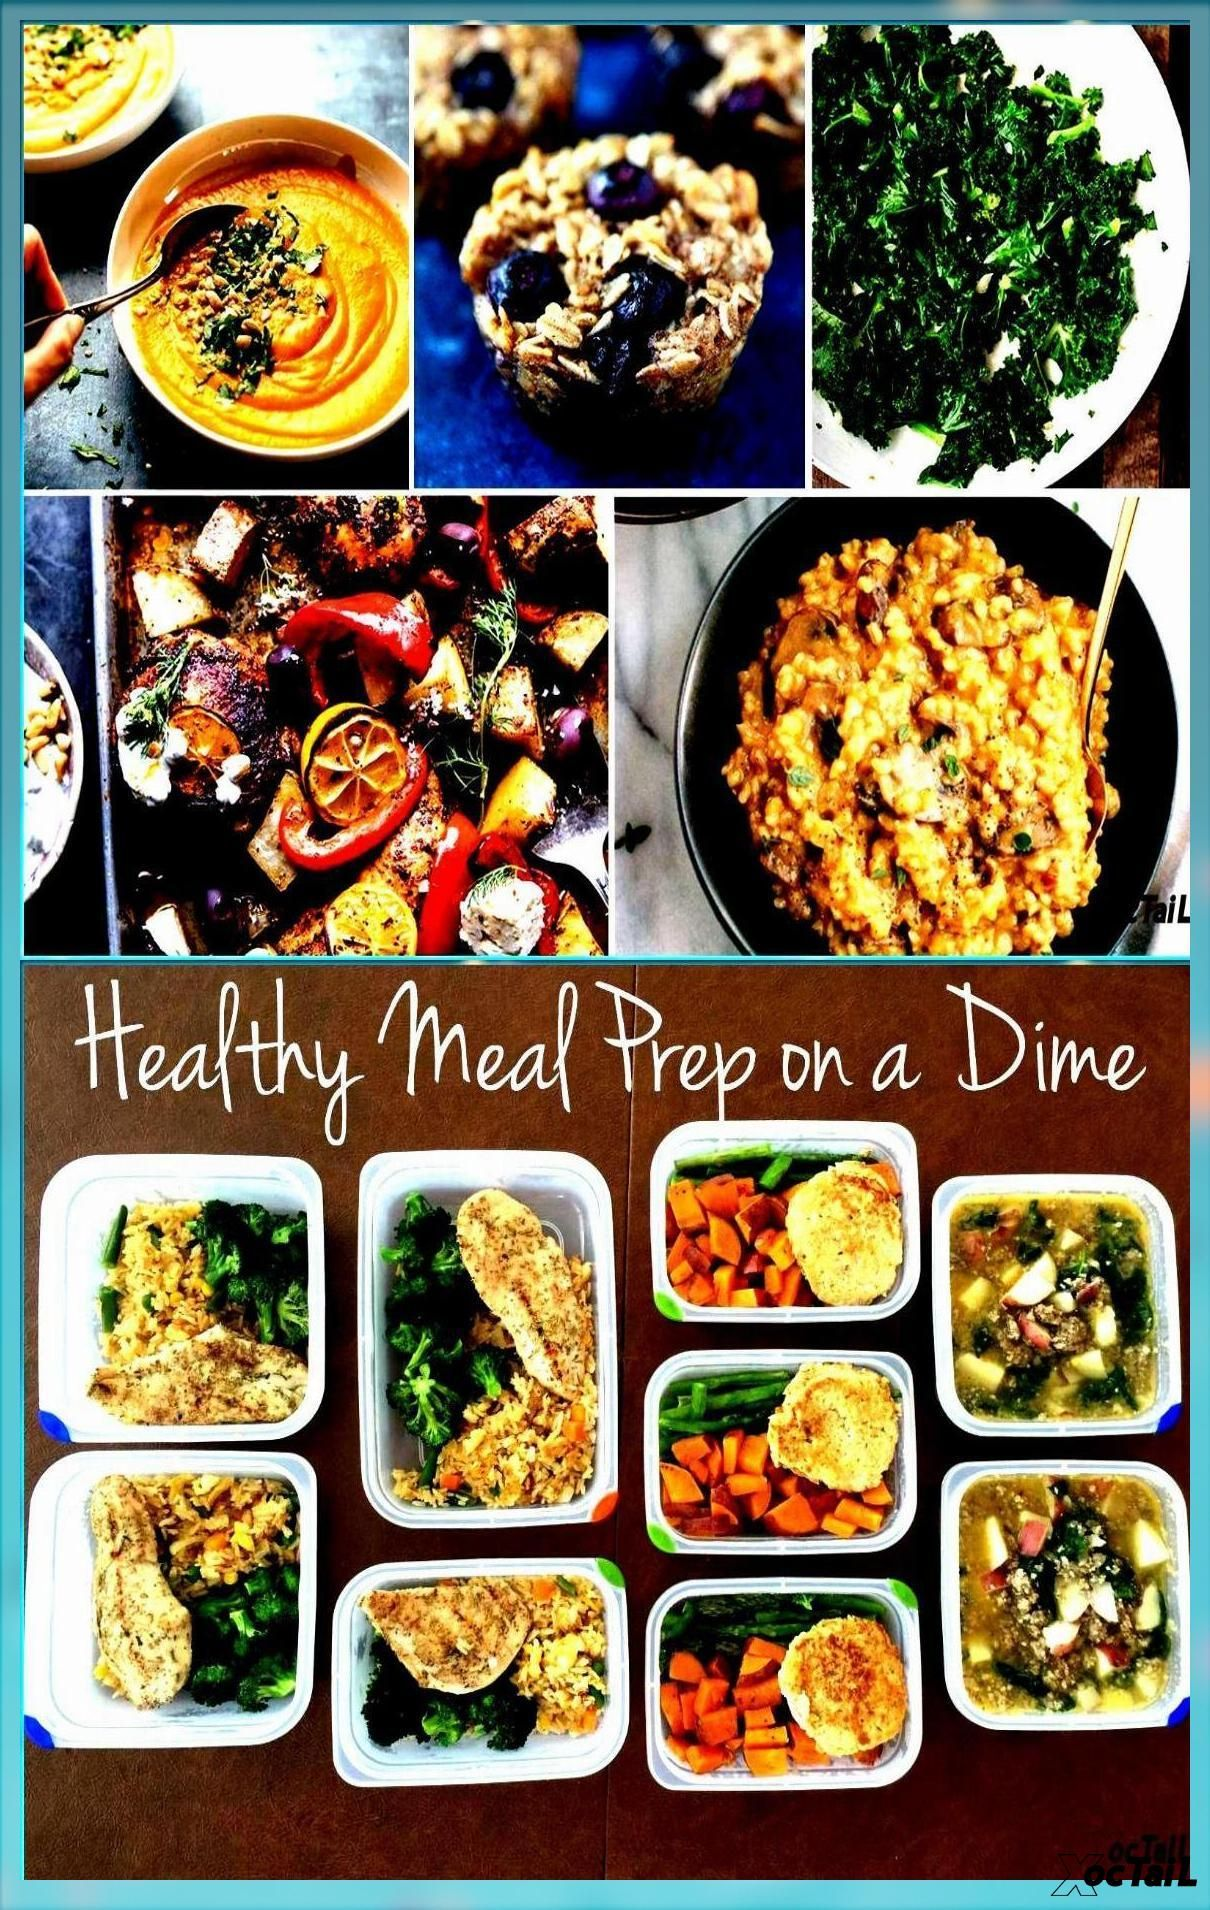 Meal Prep 5 Healthy Recipes To Get You Through The Week Healthy Meals Meal Prep Co Veggie Meal Prep Healthy Breakfast Recipes Vegetarian Recipes Healthy